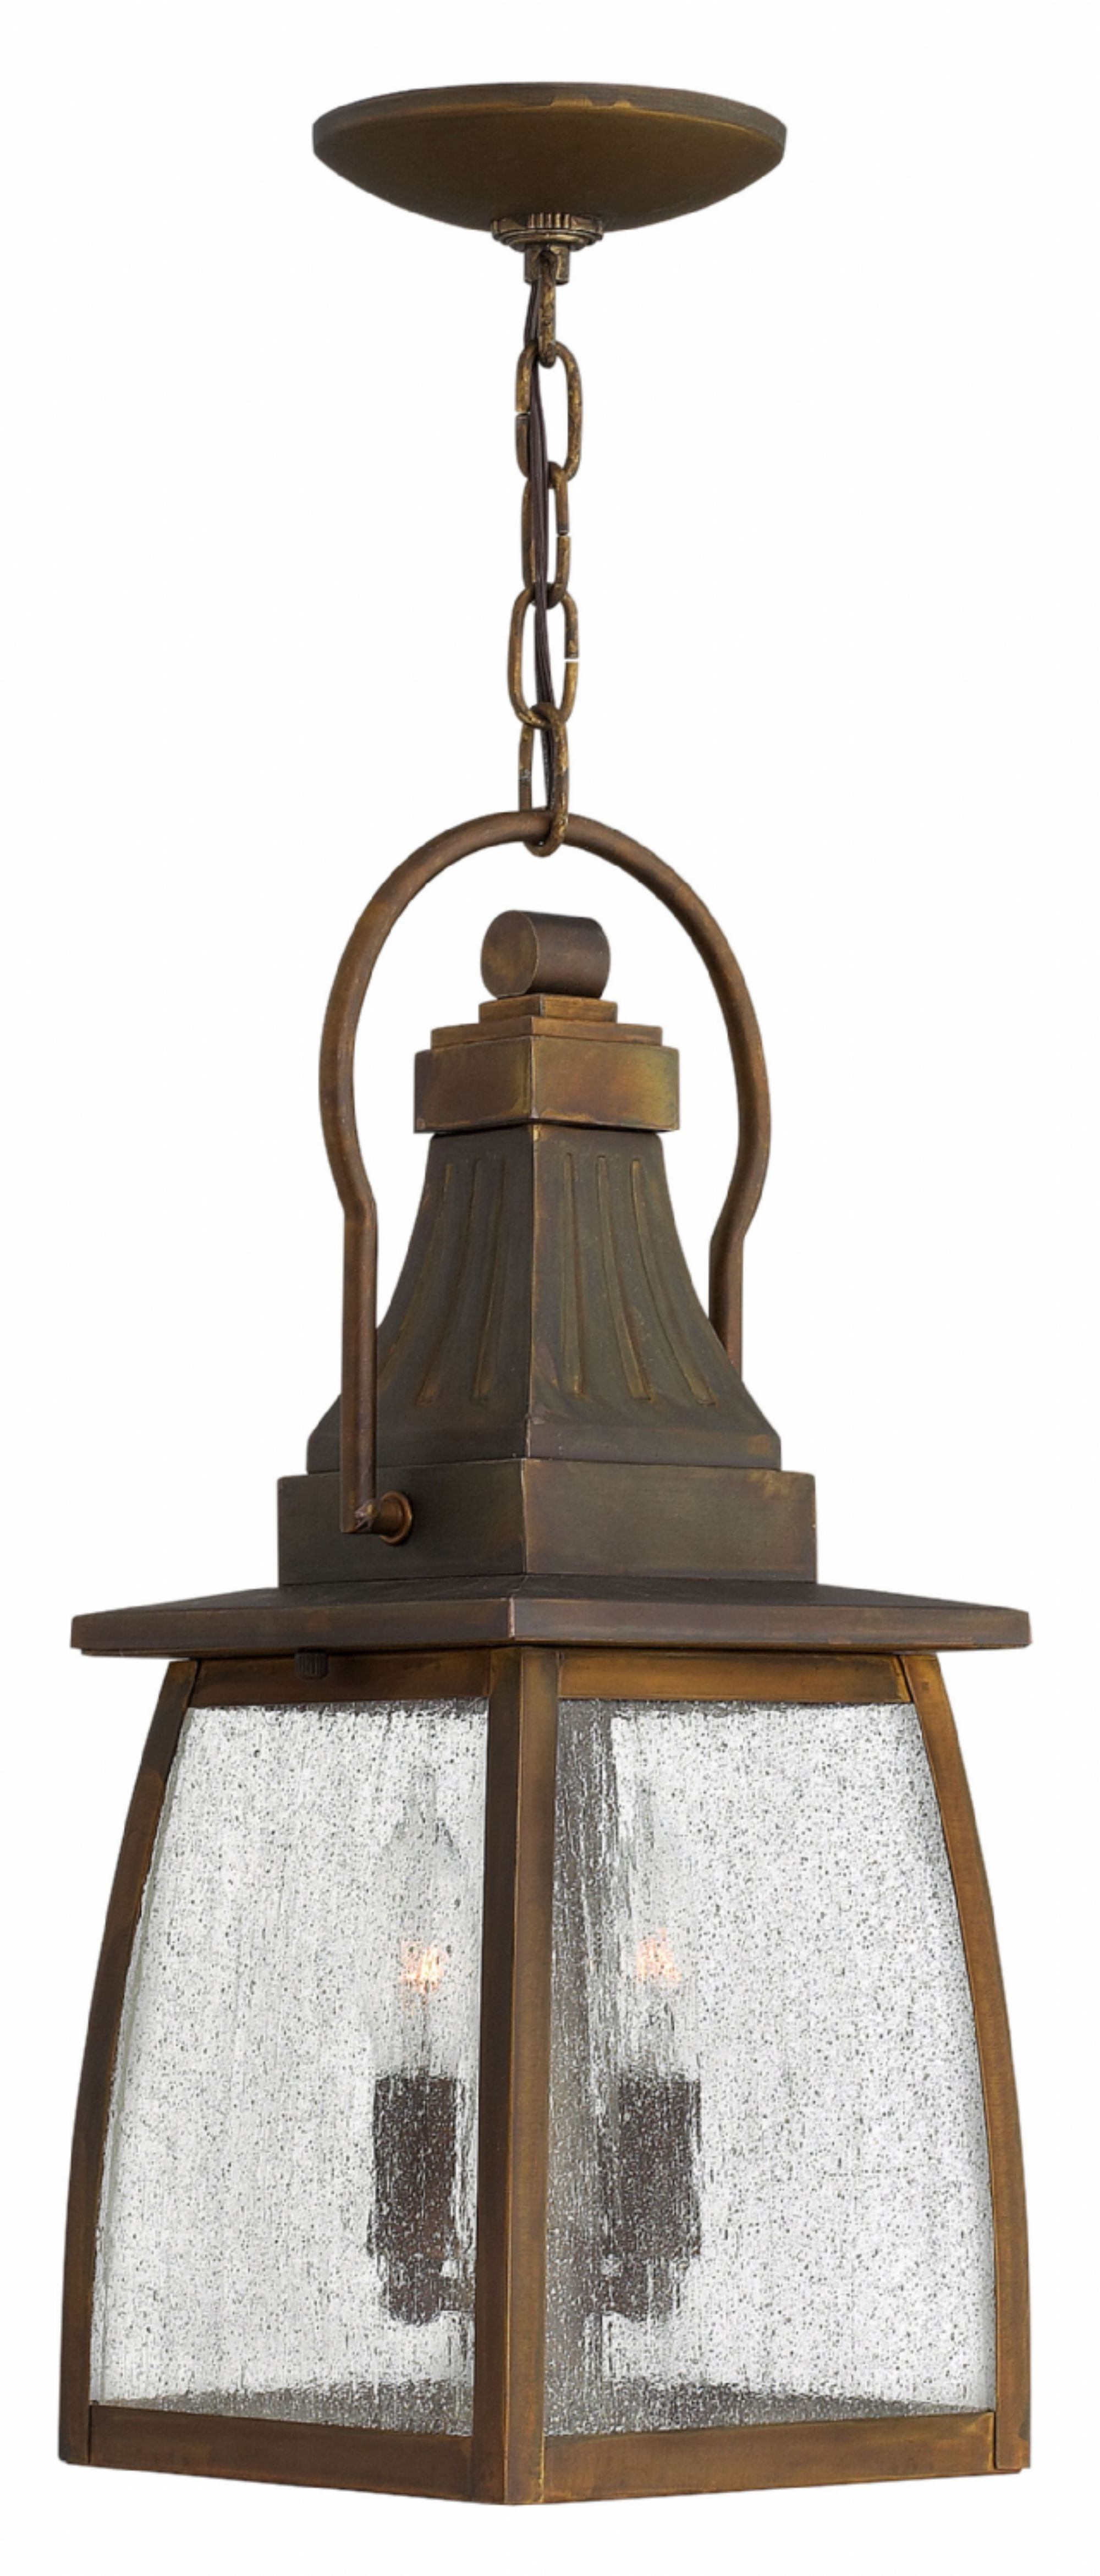 Widely Used Sienna Montauk > Exterior Ceiling Mount Pertaining To Brass Porch Hinkley Lighting (View 20 of 20)